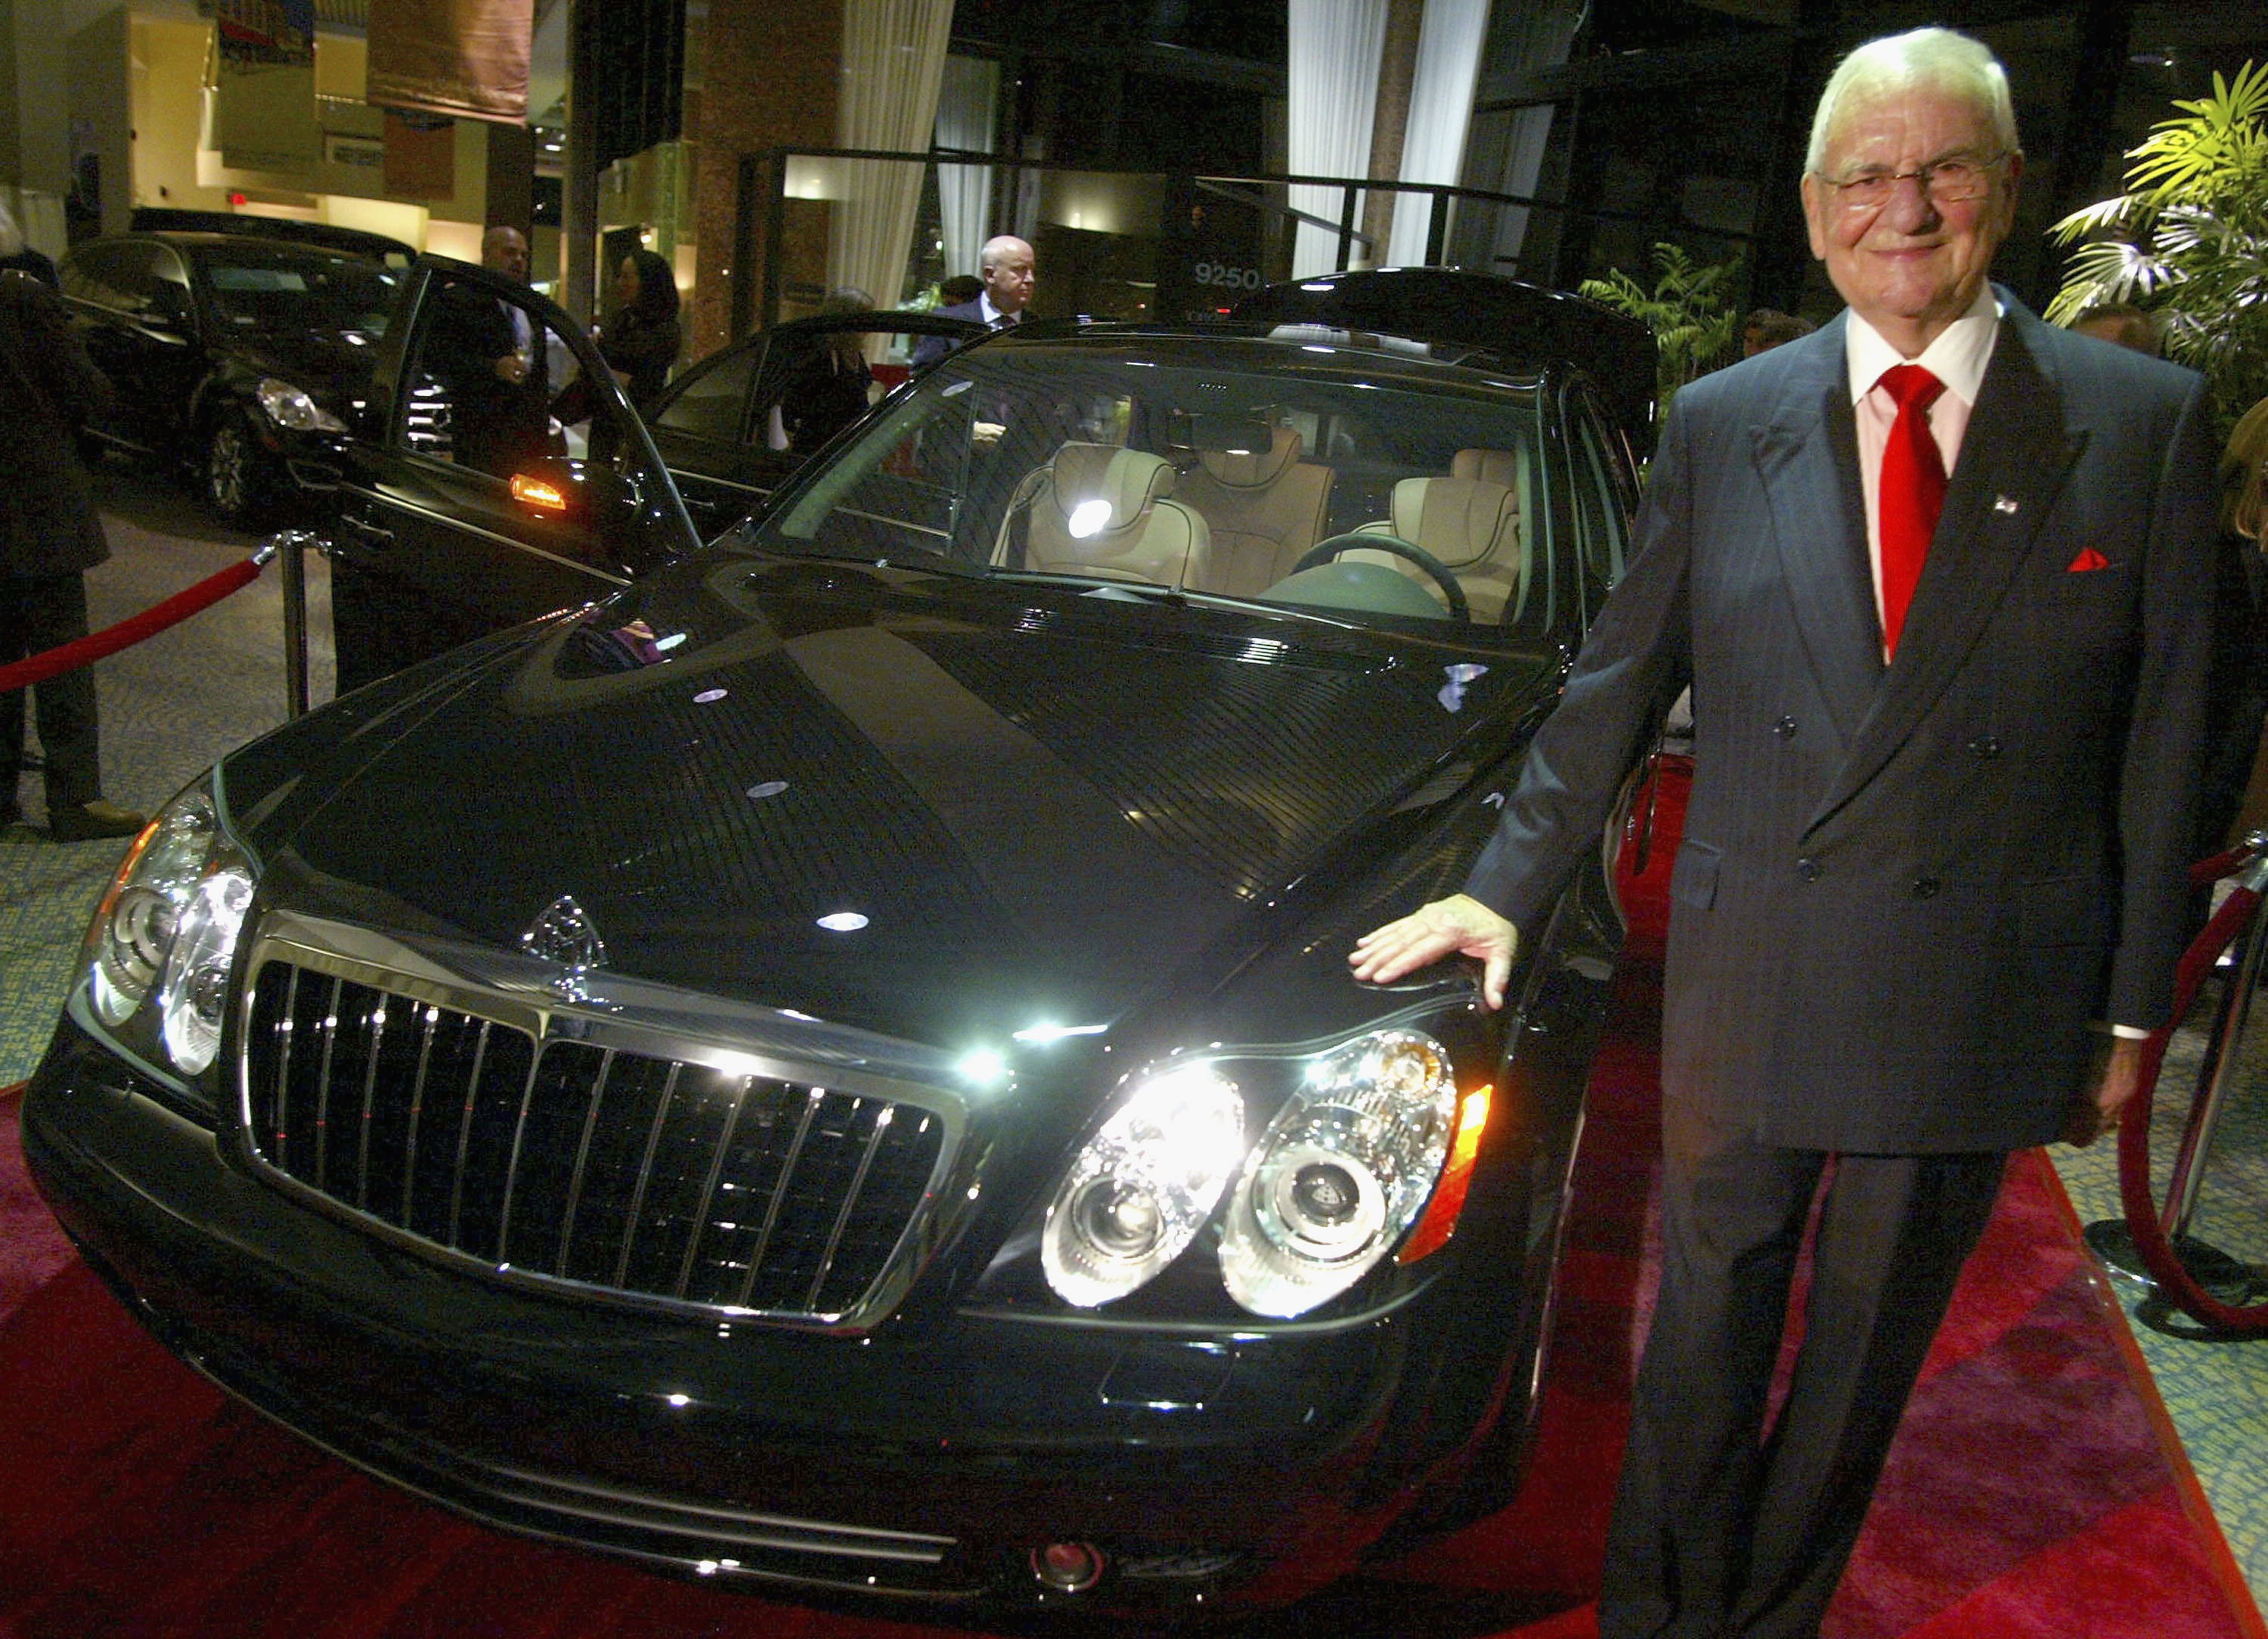 "BEVERLY HILLS , CA - OCTOBER 18: Chrysler Chairman Lee Iacocca attends the unveiling of the new Mercedes-Benz Maybach 57S at Mercedes Benz of Beverly Hills on October 18, 2005 in Beverly Hills, California. The 605 HP V12 twin-turbo 57S sports a pricetag of $360,000 and is custom built to order with options like a champagne refrigerator and dual 9.5"" flat screen monitors. (Photo by Matthew Simmons/Getty Images)"